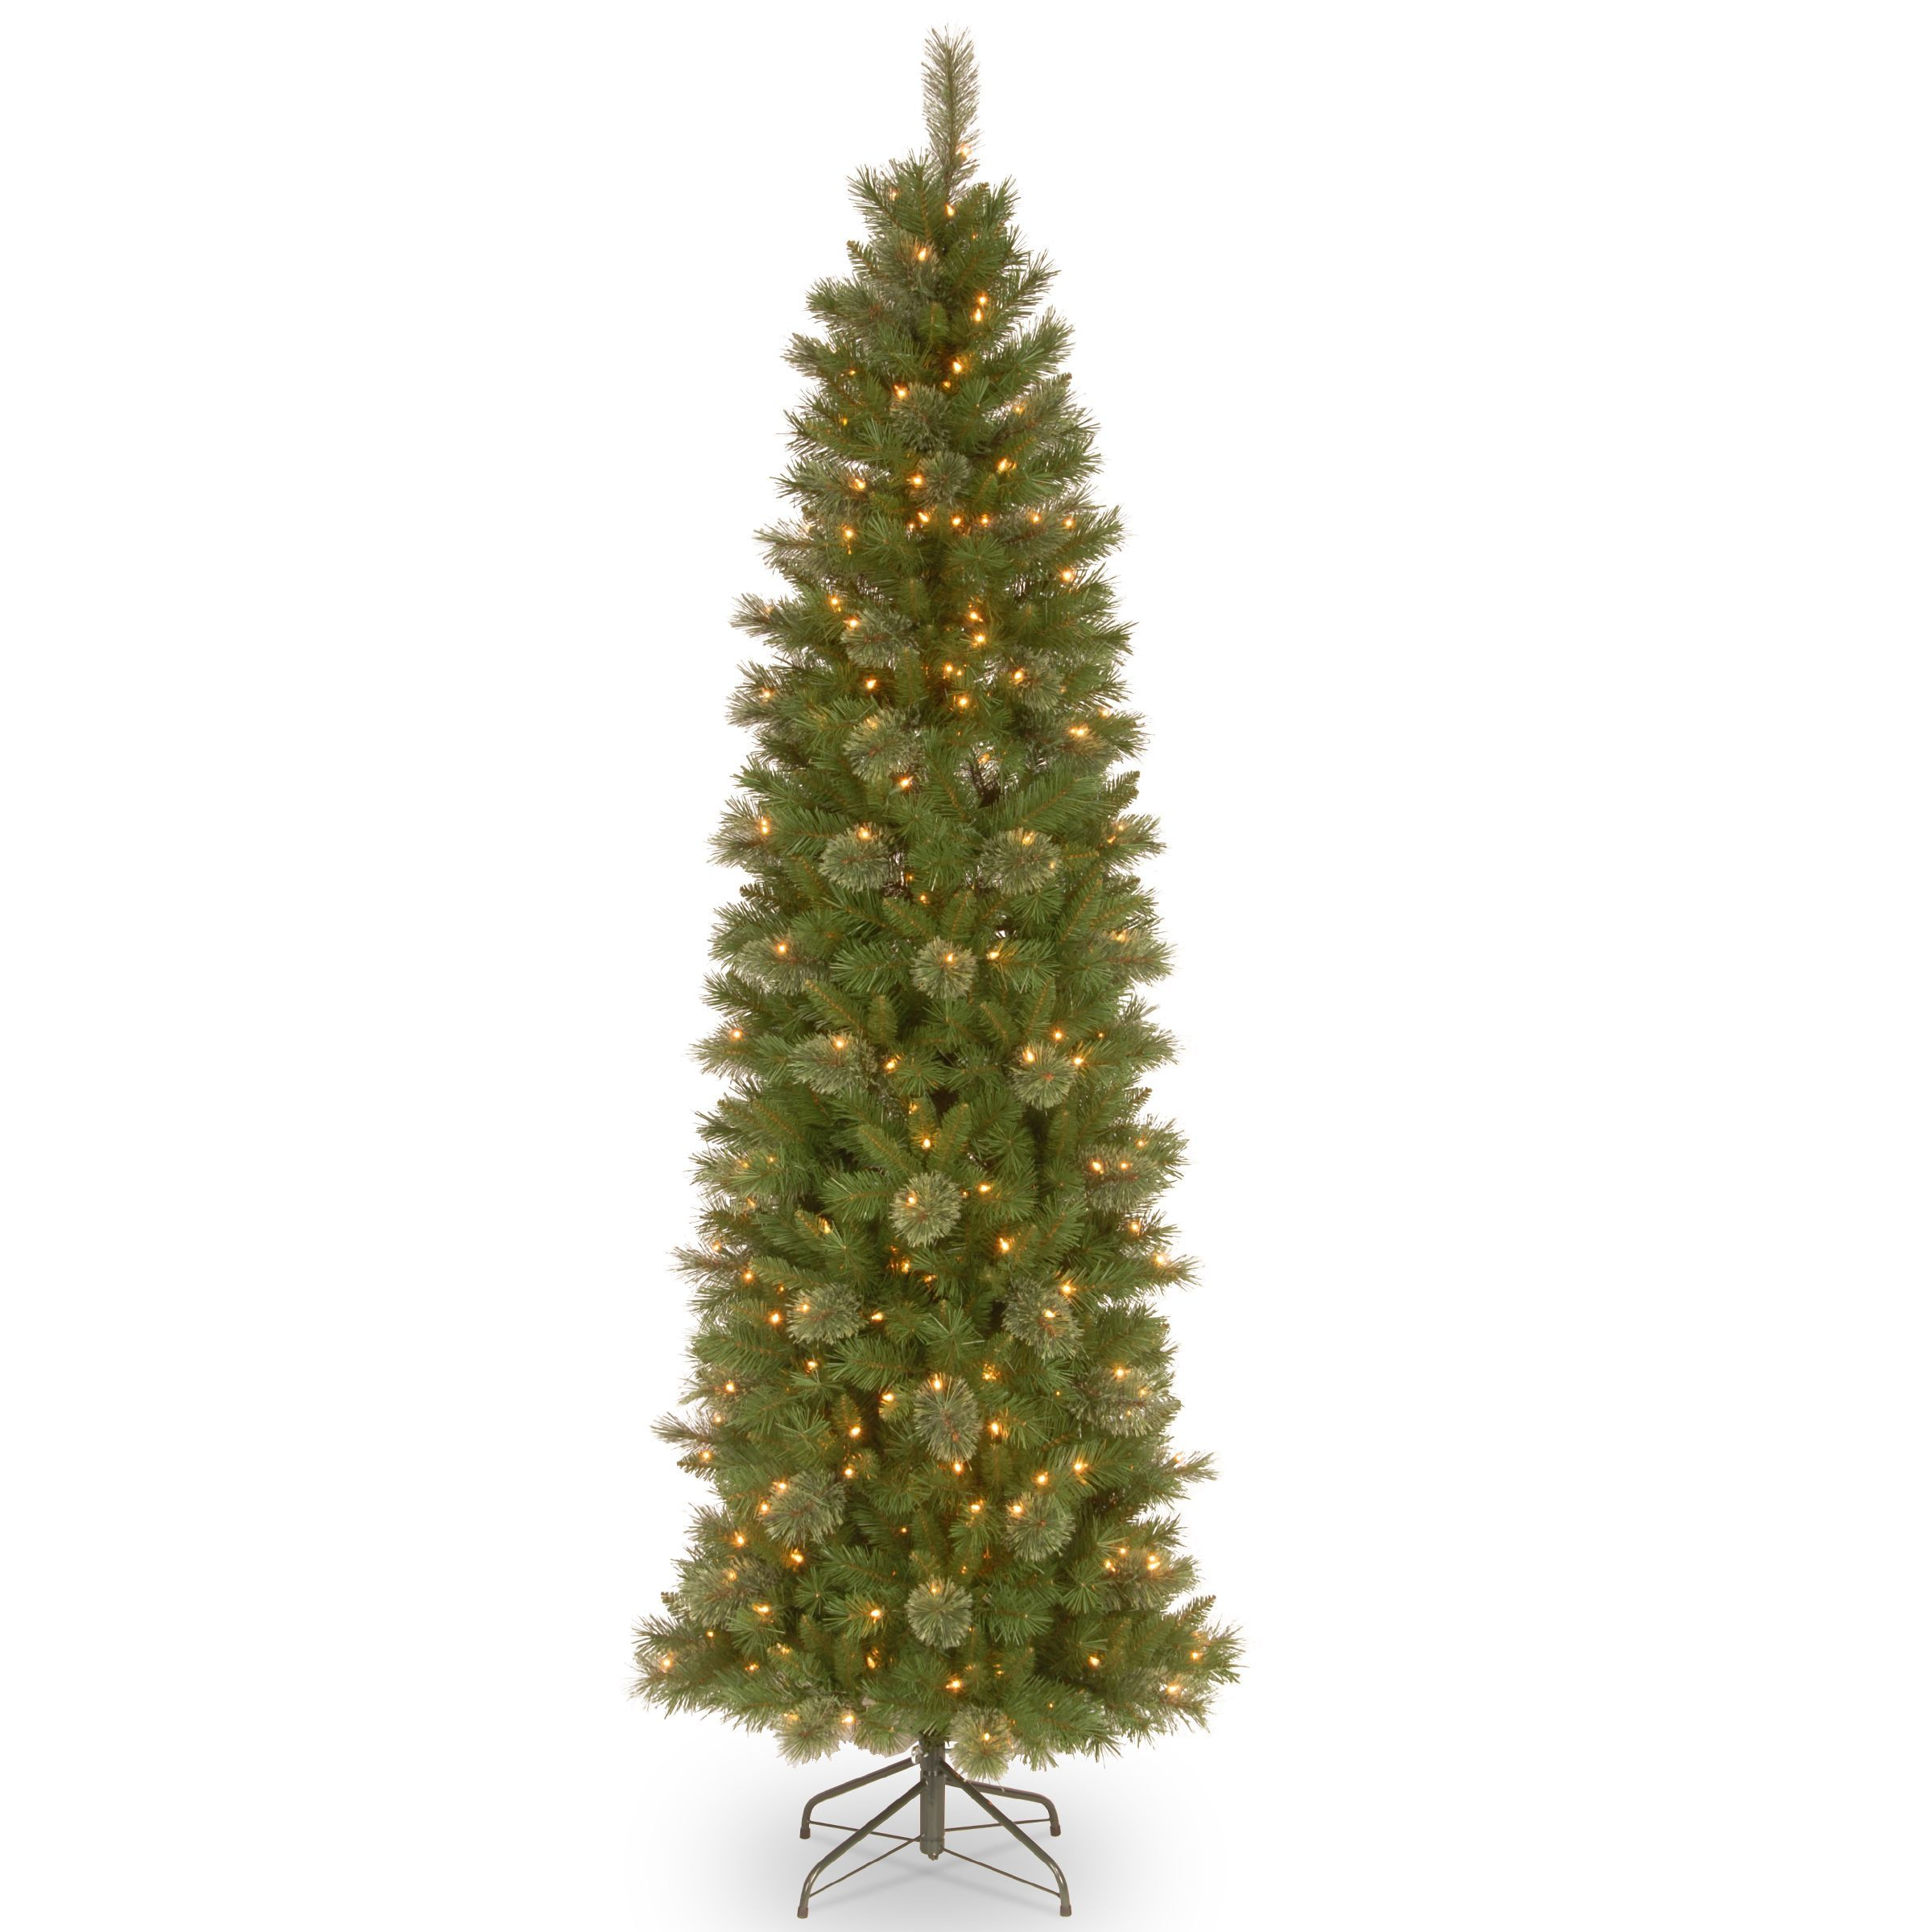 7 1/2' Tacoma Pine Pencil Slim Tree with 350 Clear Lights (350 Clear Lights), Green (Metal)